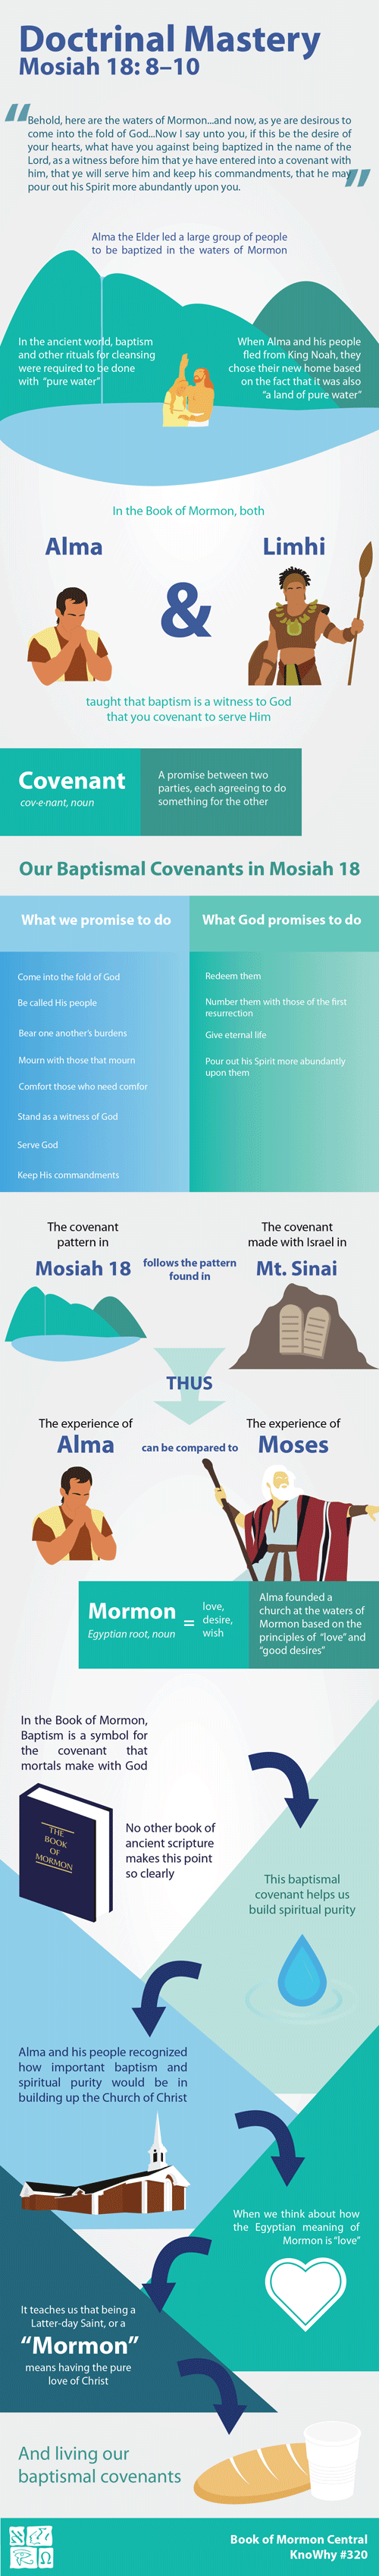 hight resolution of doctrinal mastery mosiah 18 8 10 infographic by book of mormon central